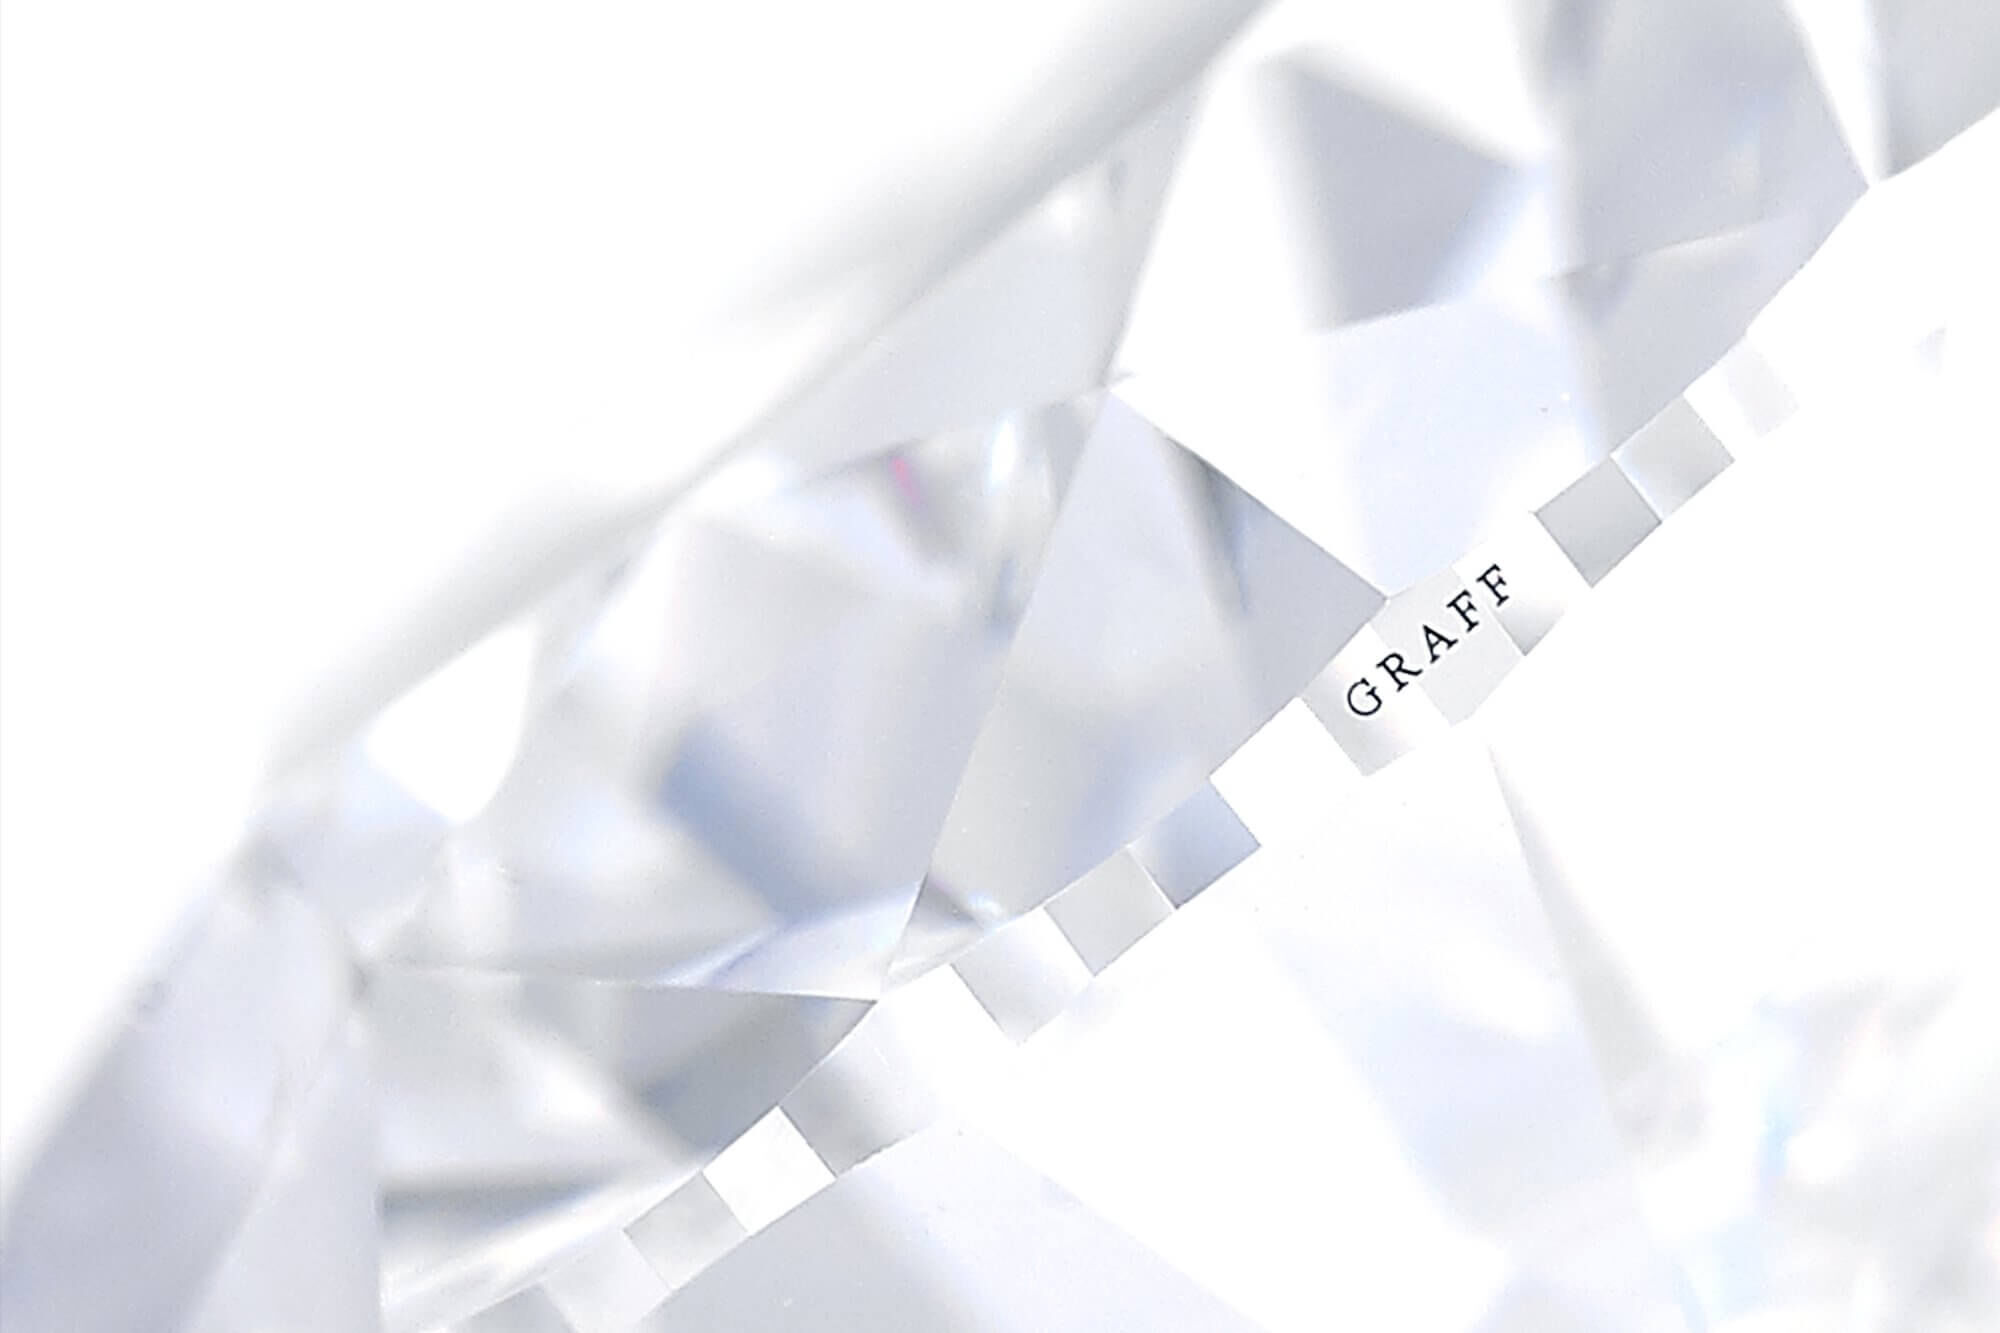 Close up of a Graff diamond with logo on the shank